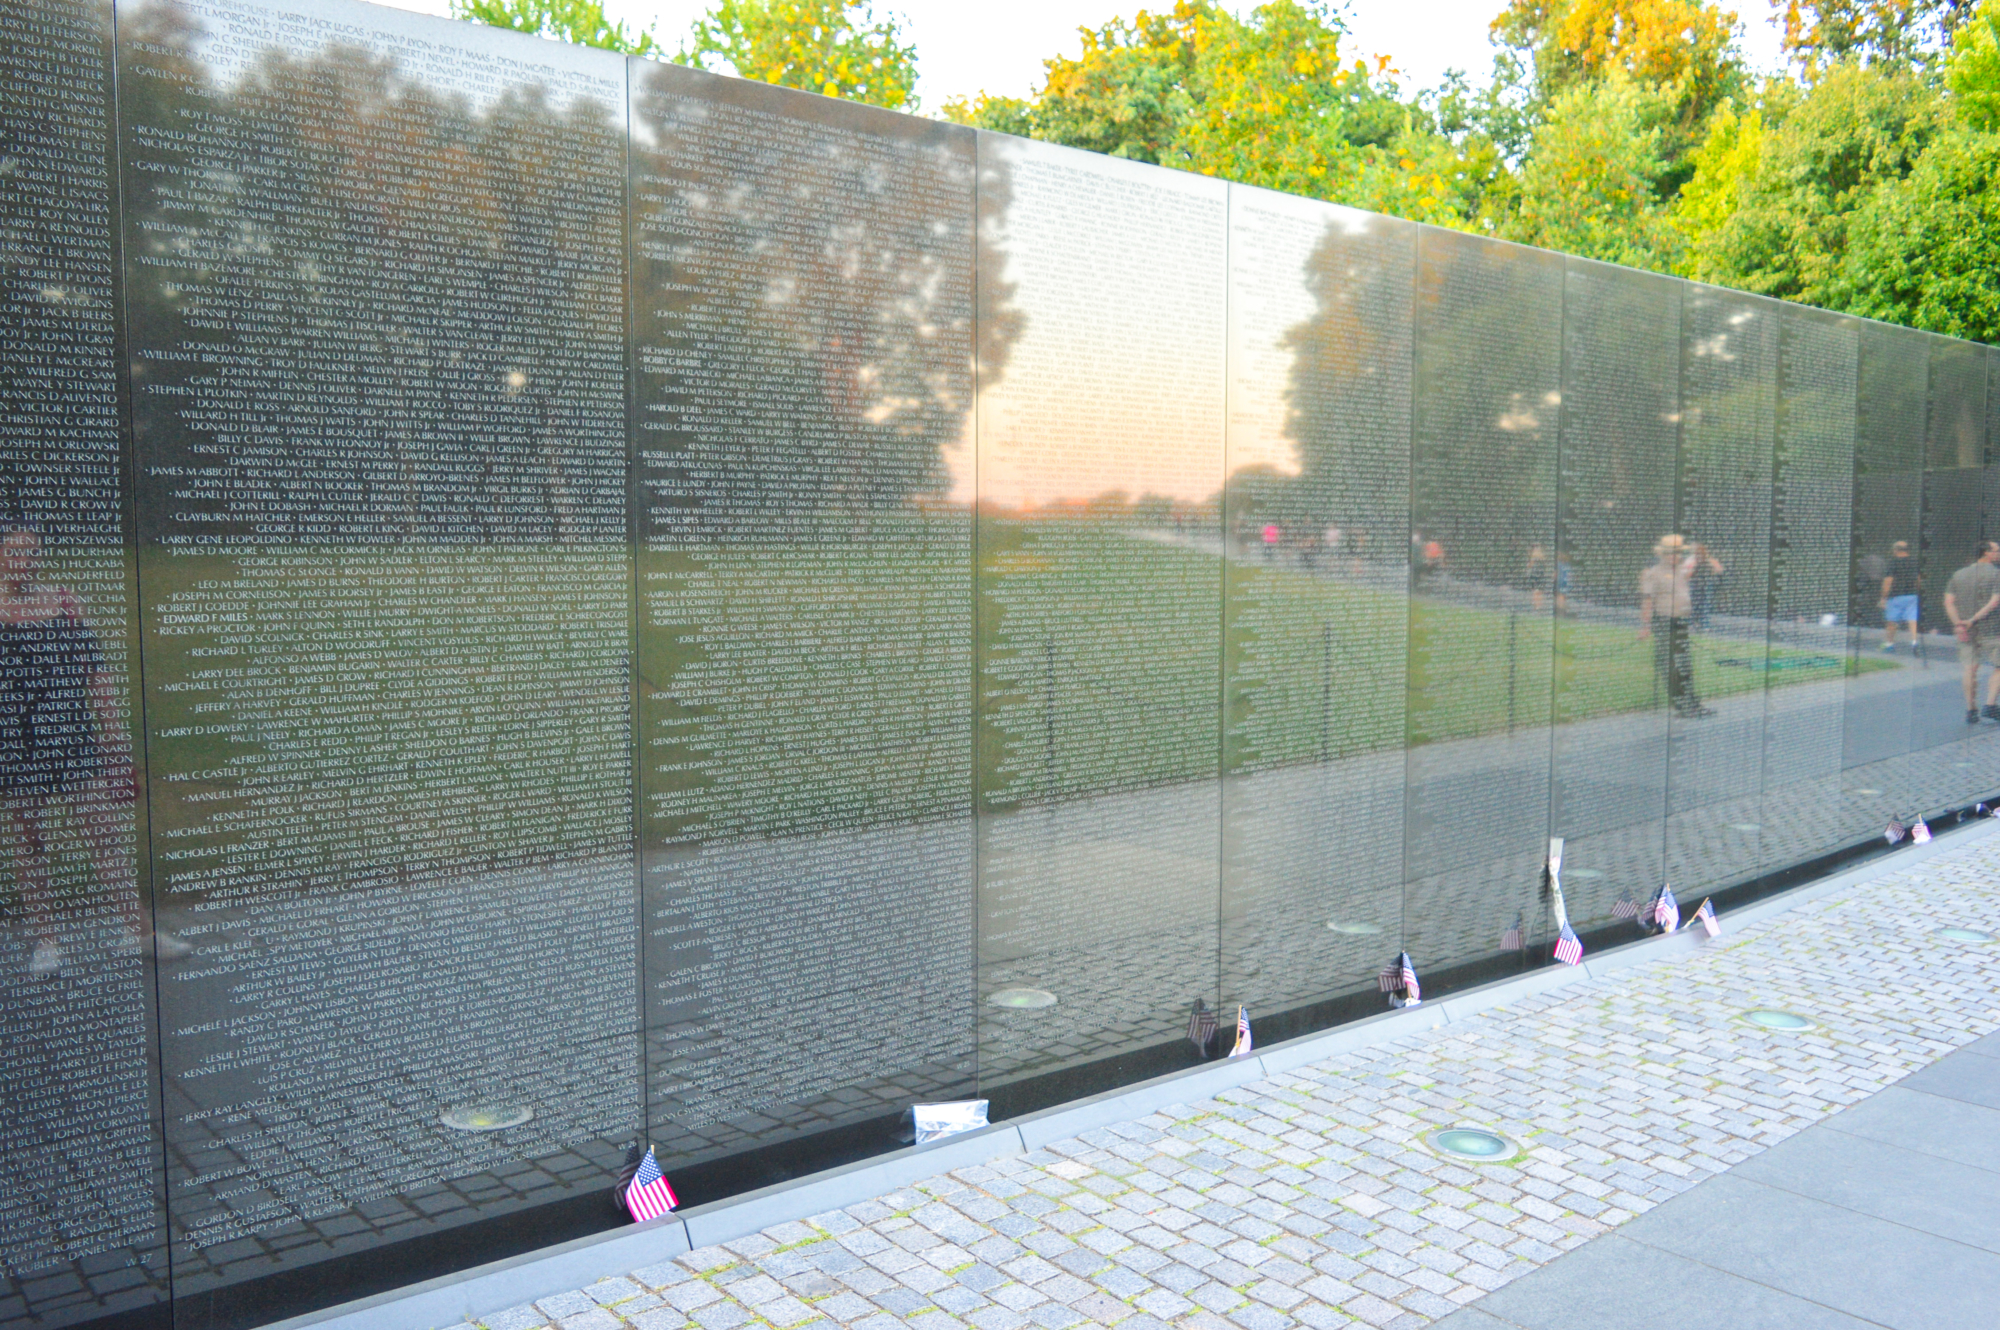 Vietnam Veterans Memorial Washington D.C.